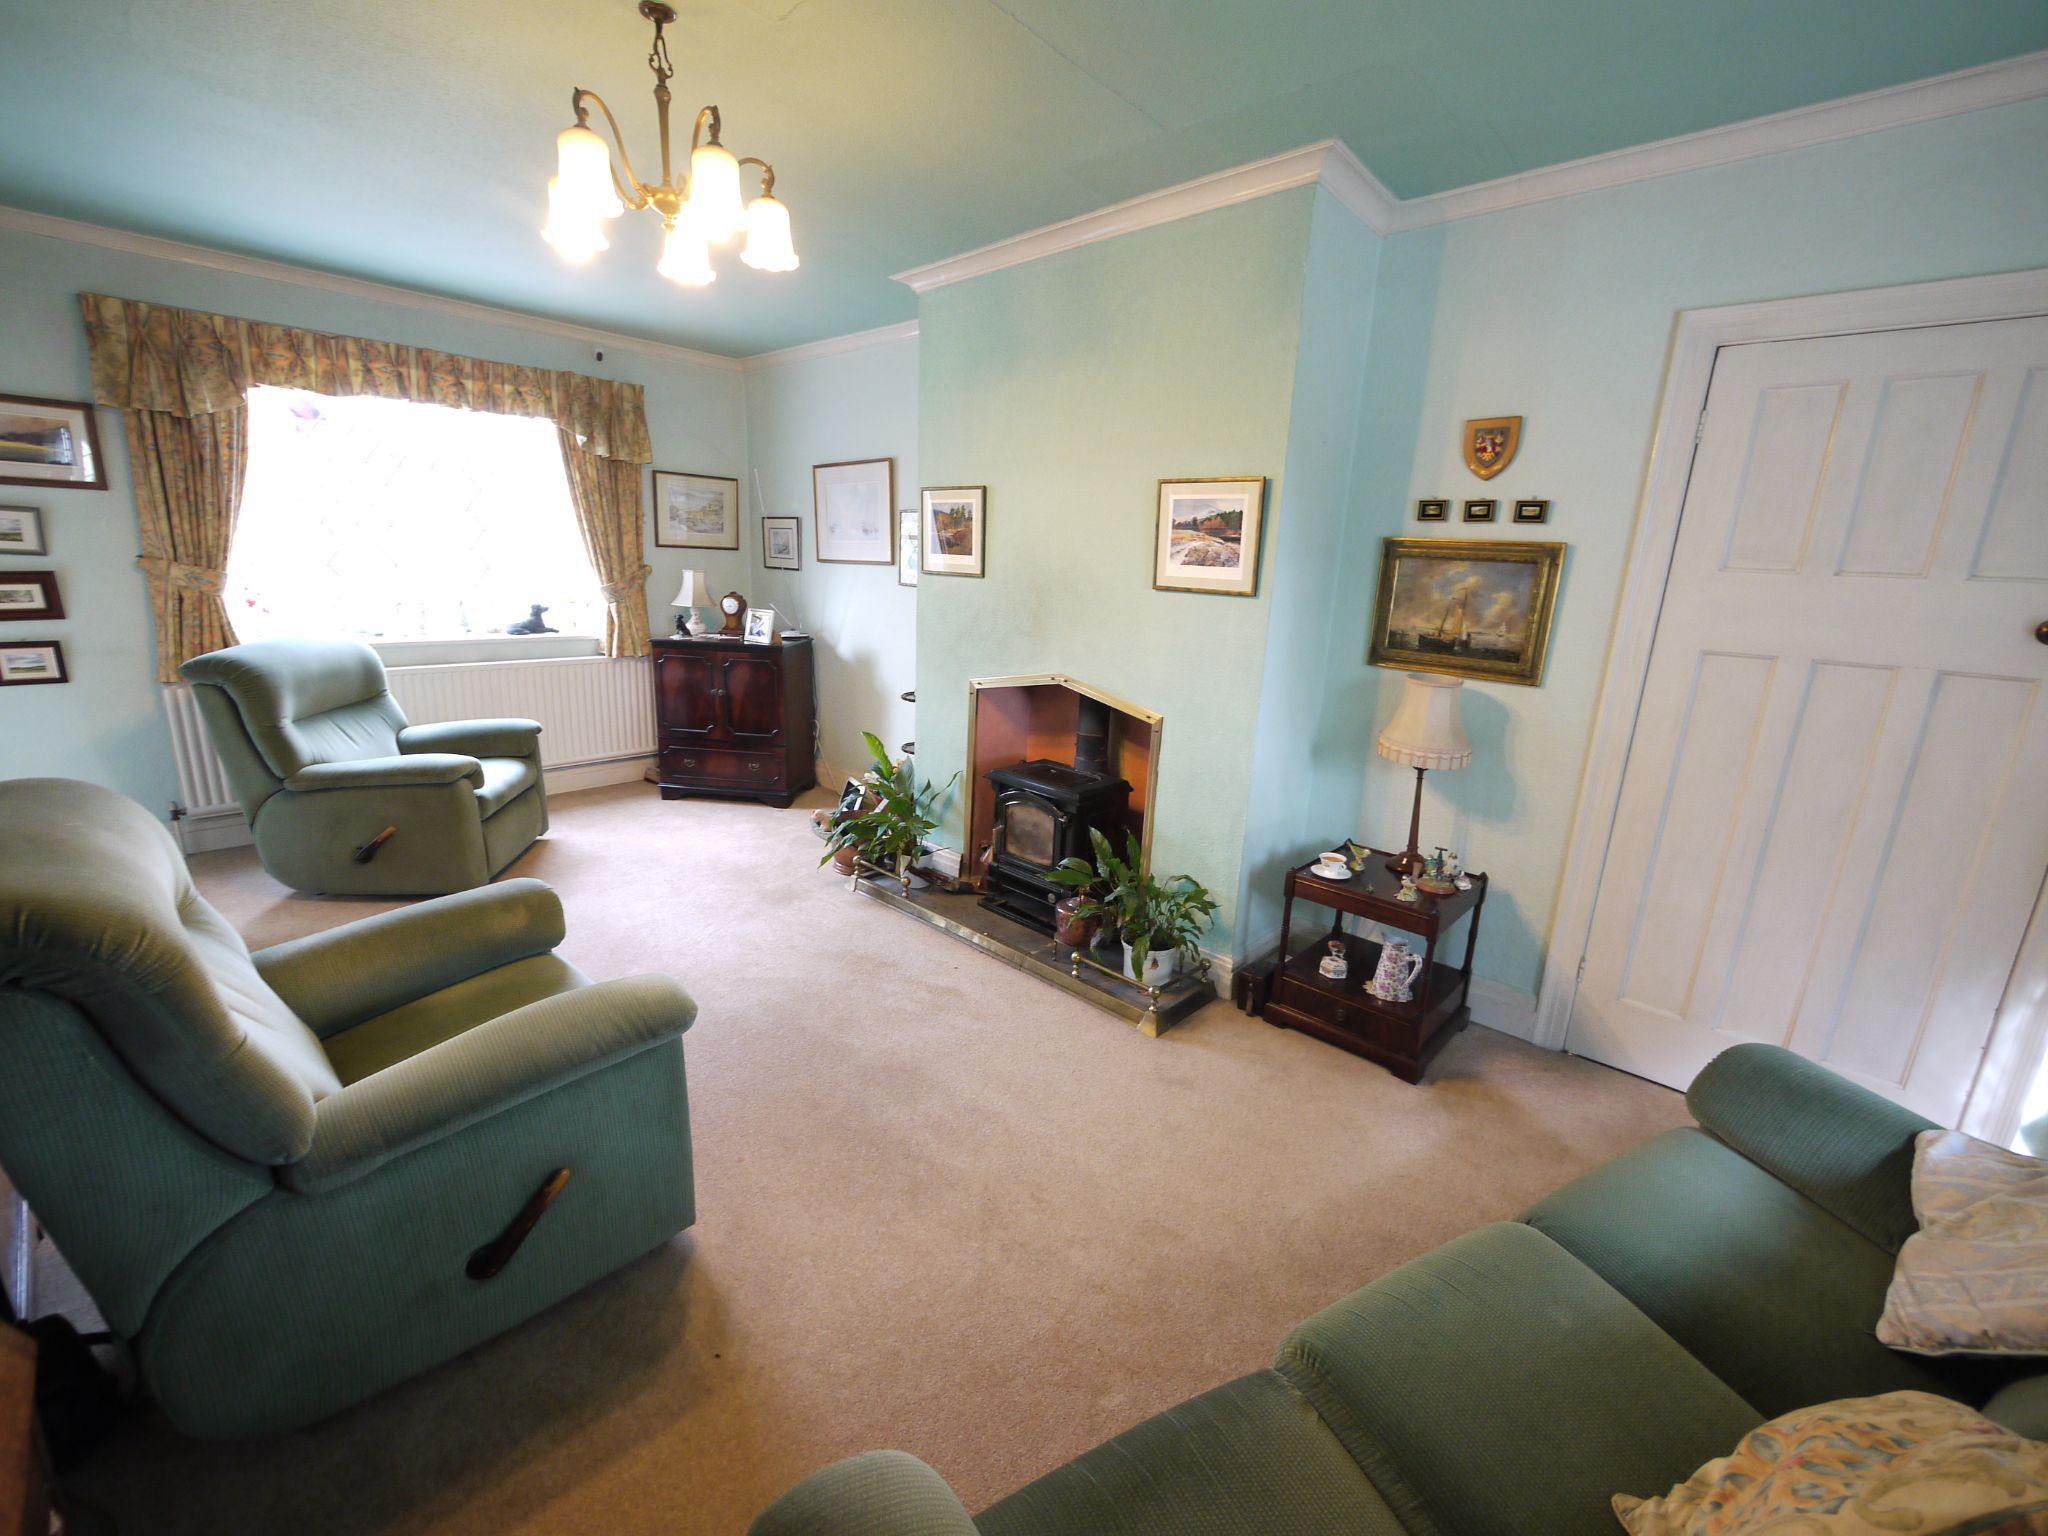 3 bedroom detached house SSTC in Brighouse - Lounge 1.